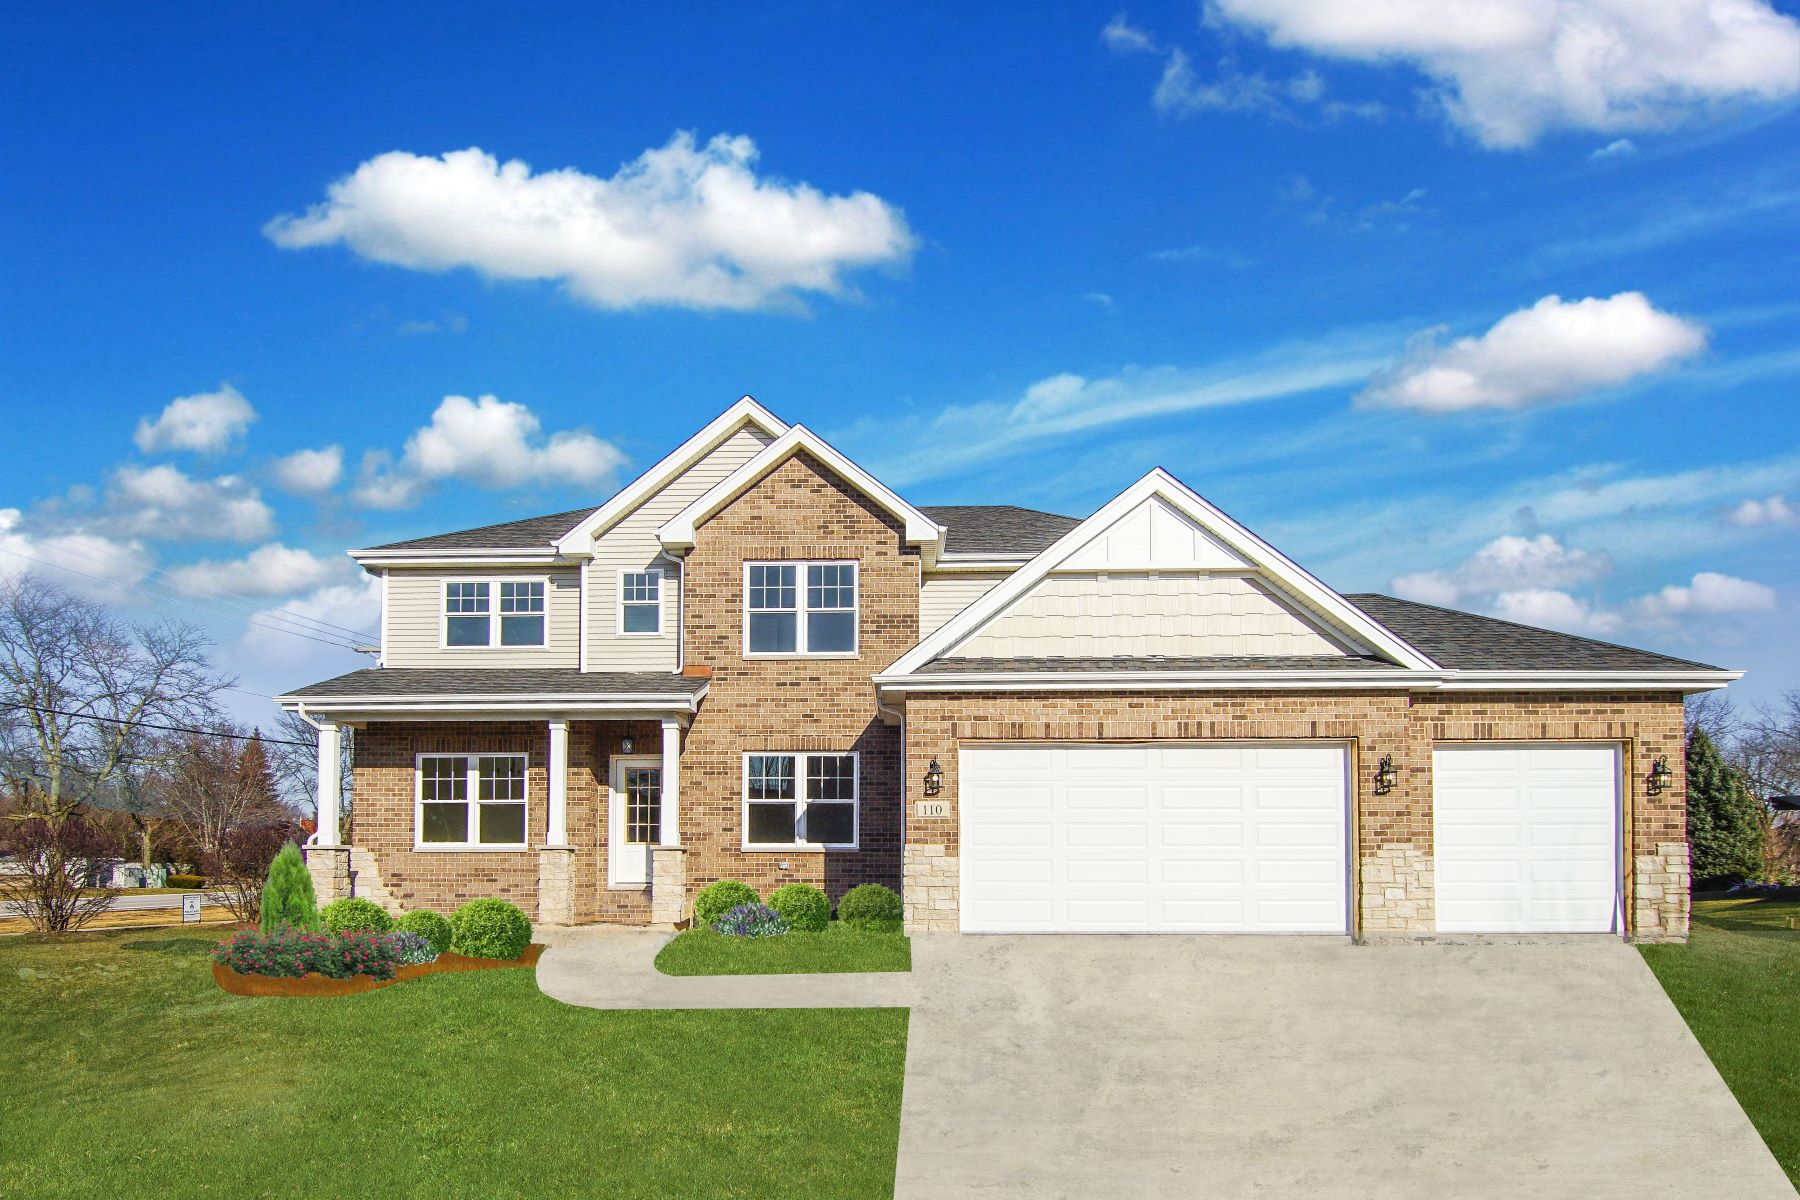 Single Family Homes for Active at Move in Ready at Wildflower Estates 110 Sonoma Road New Lenox, Illinois 60451 United States